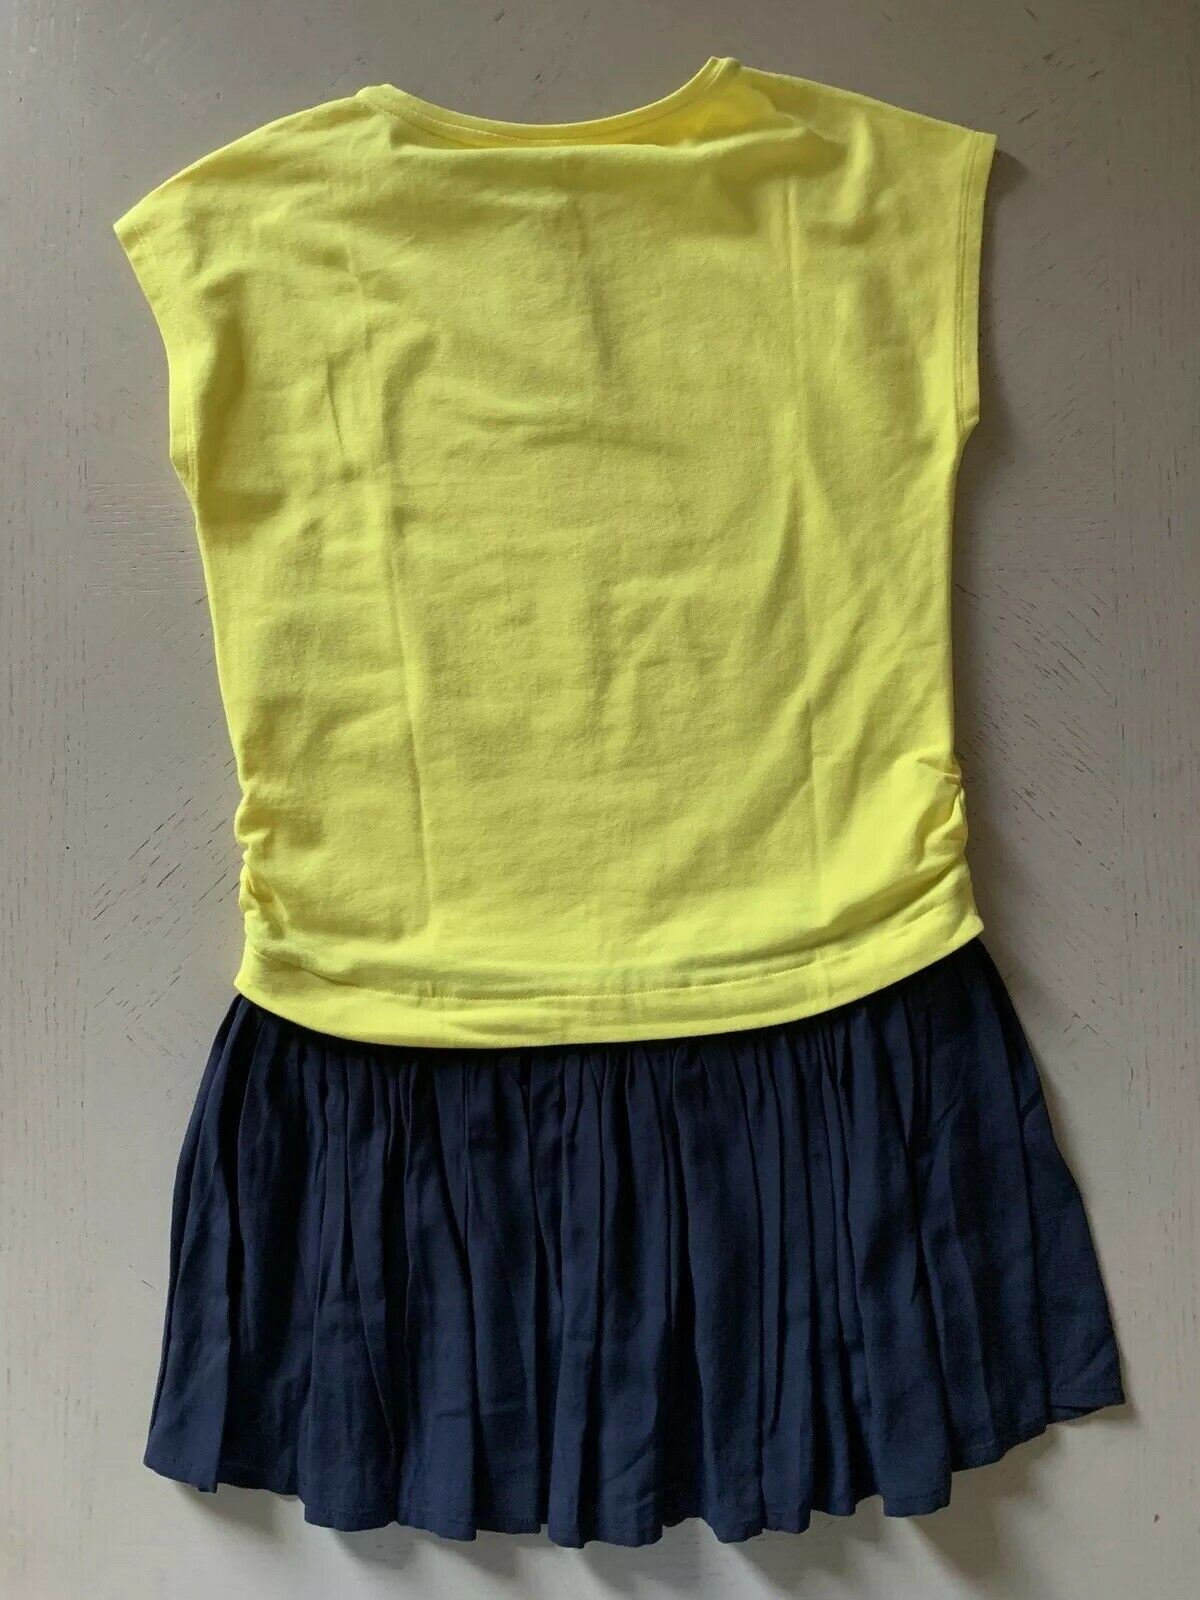 NWT $270 Armani Junior Girls Sleeveless Dress Yellow/Blue Size 12